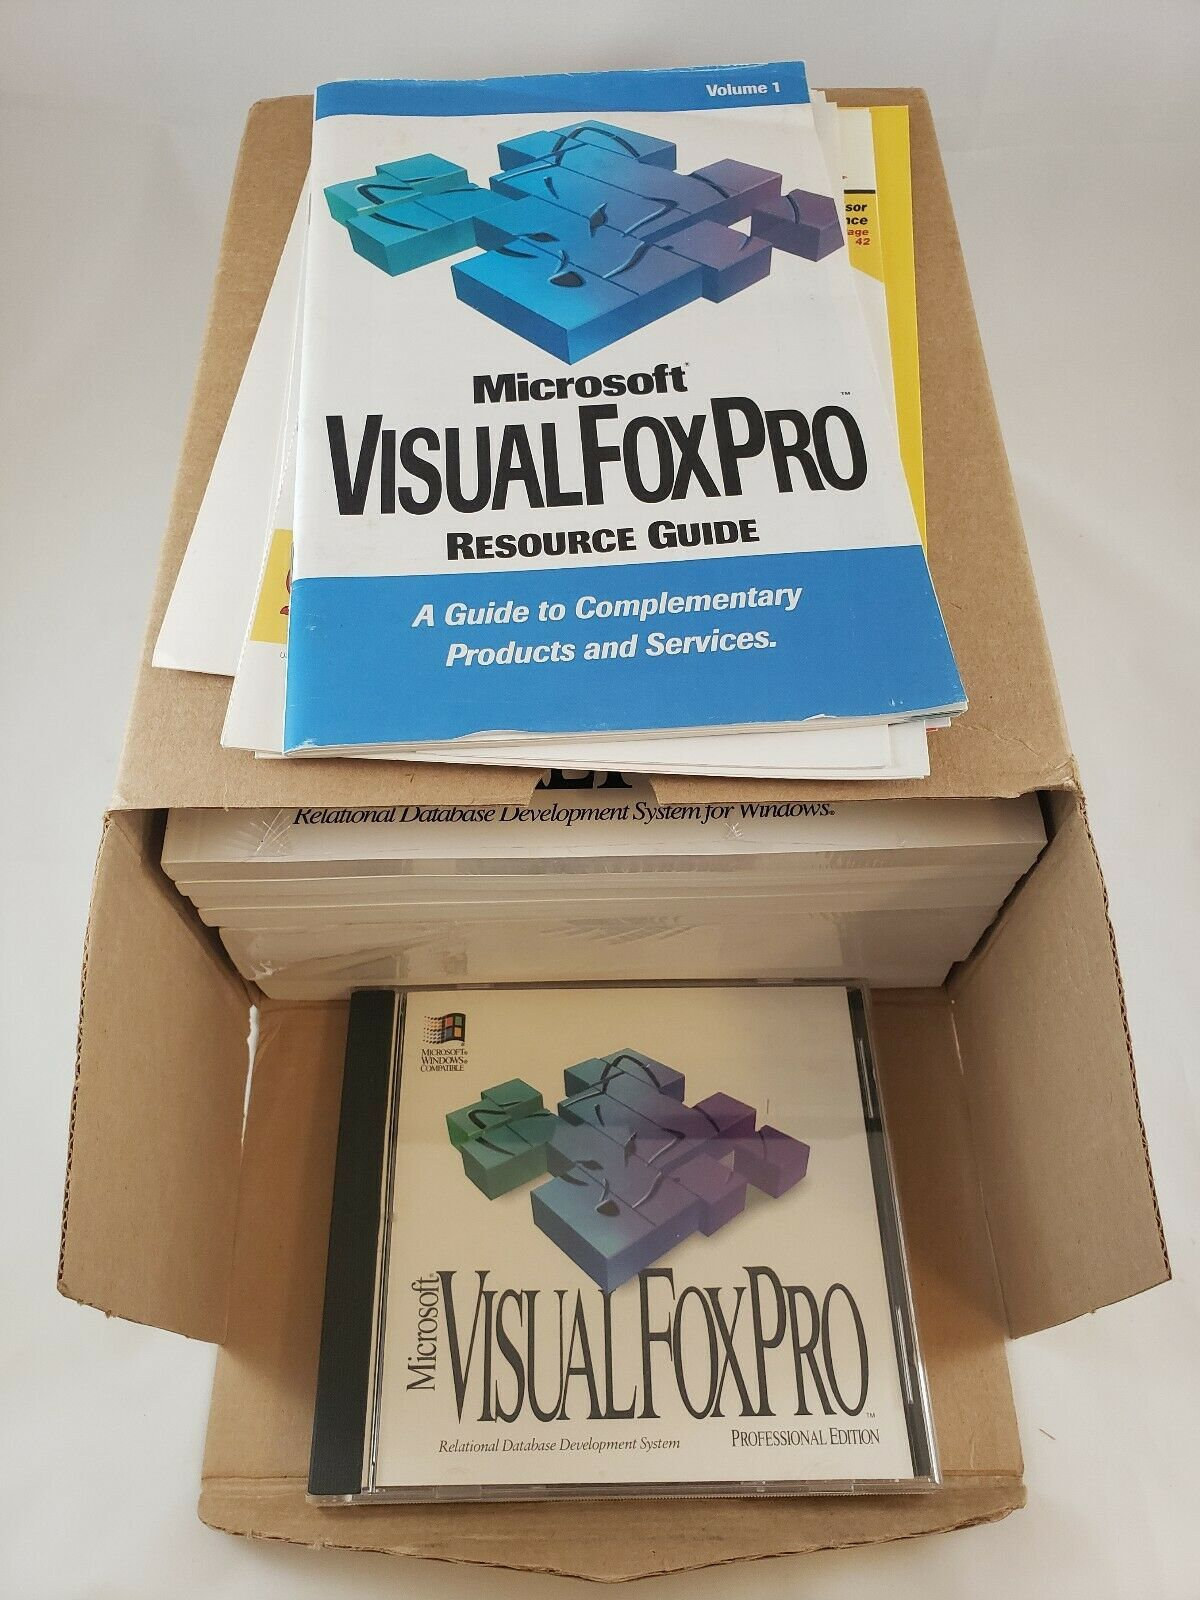 Microsoft Visual FoxPro 3.0 Upgrade (Pro Edition) Complete image 9